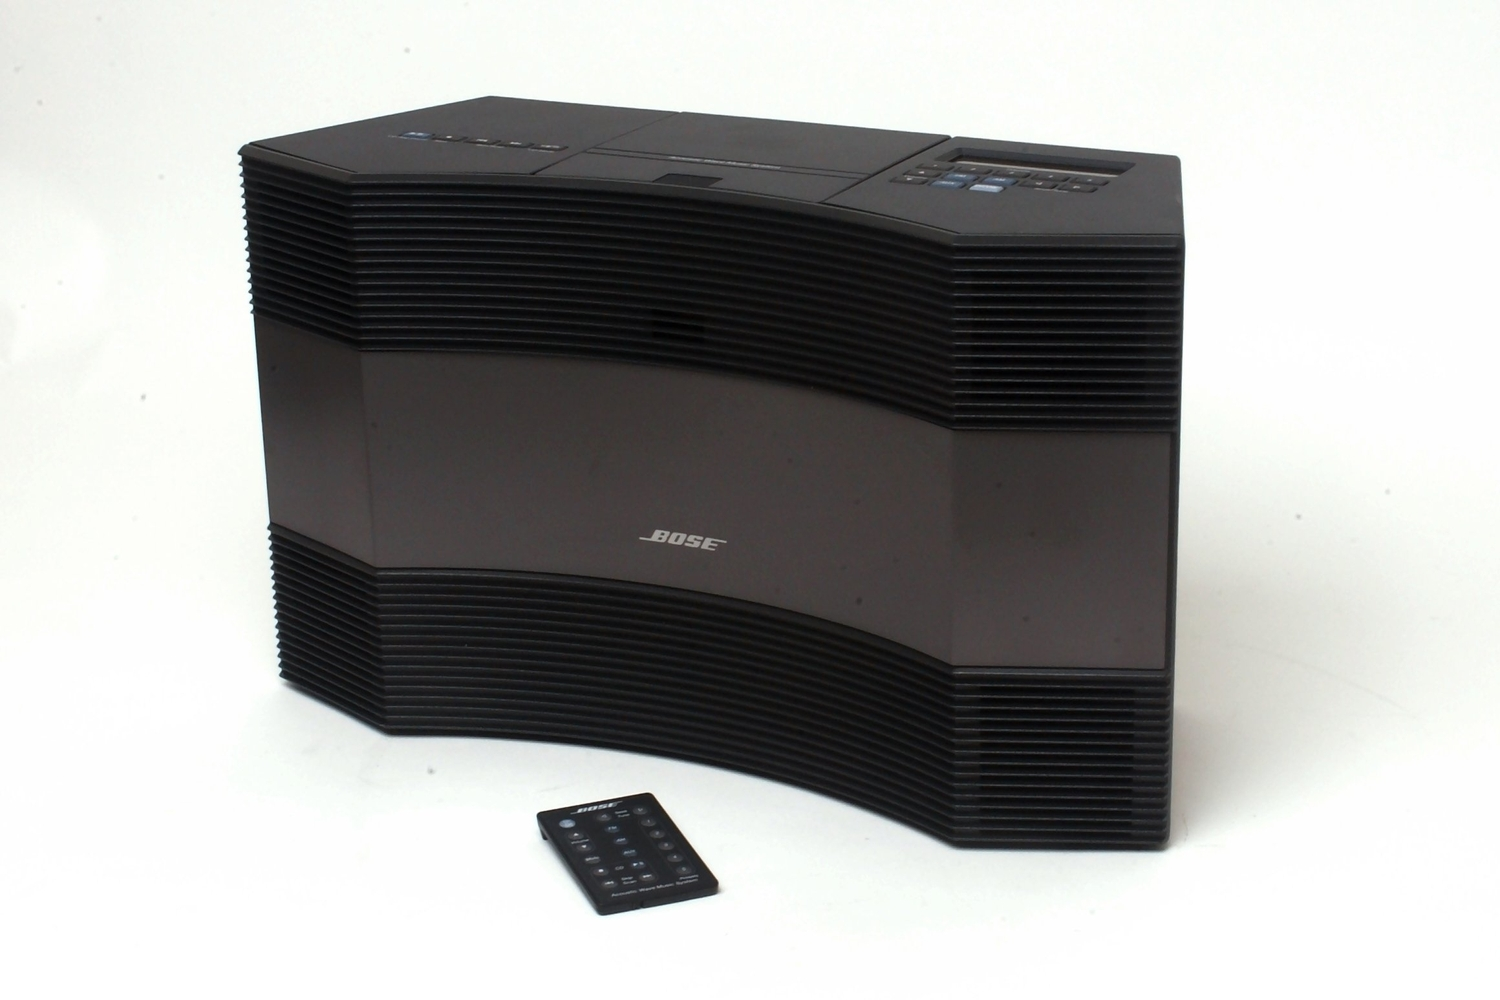 bose acoustic wave music system photos home. Black Bedroom Furniture Sets. Home Design Ideas